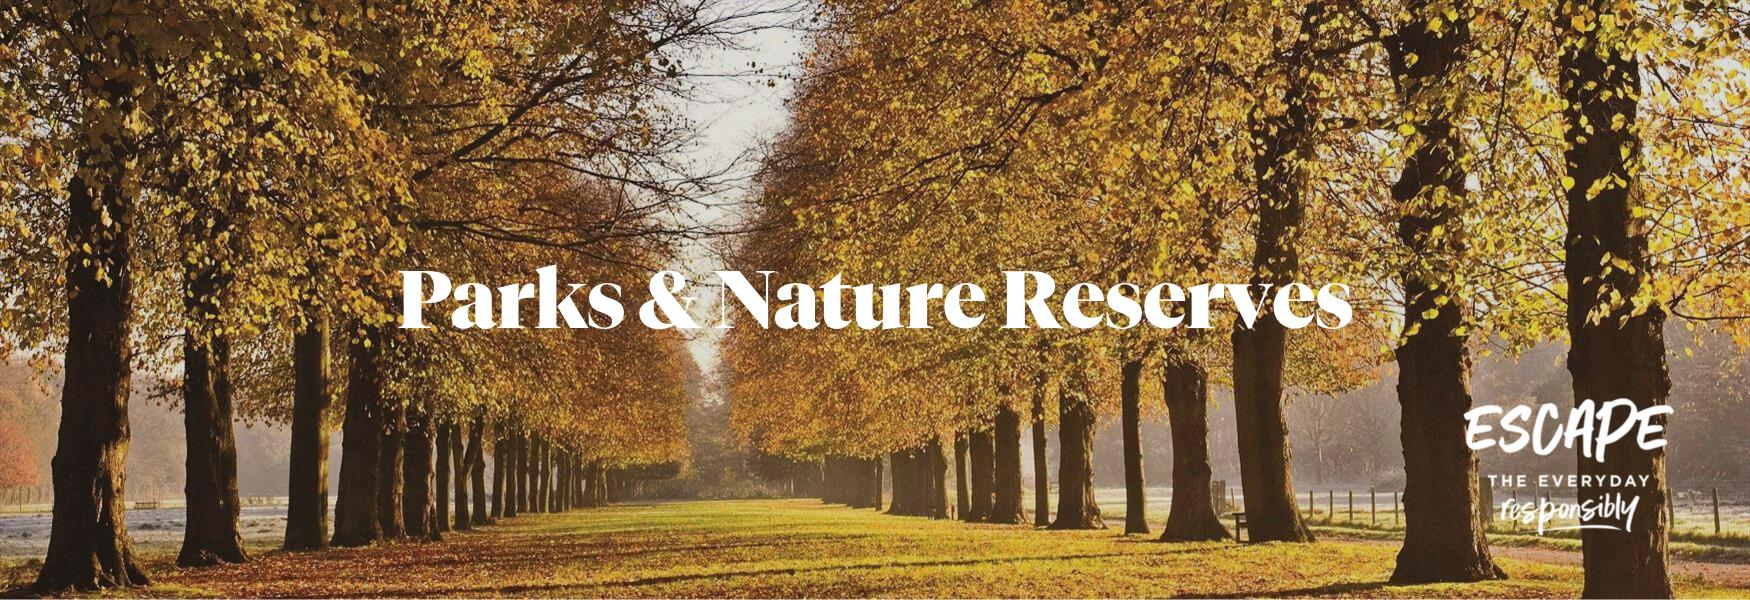 Cheshire Parks & Nature Reserves